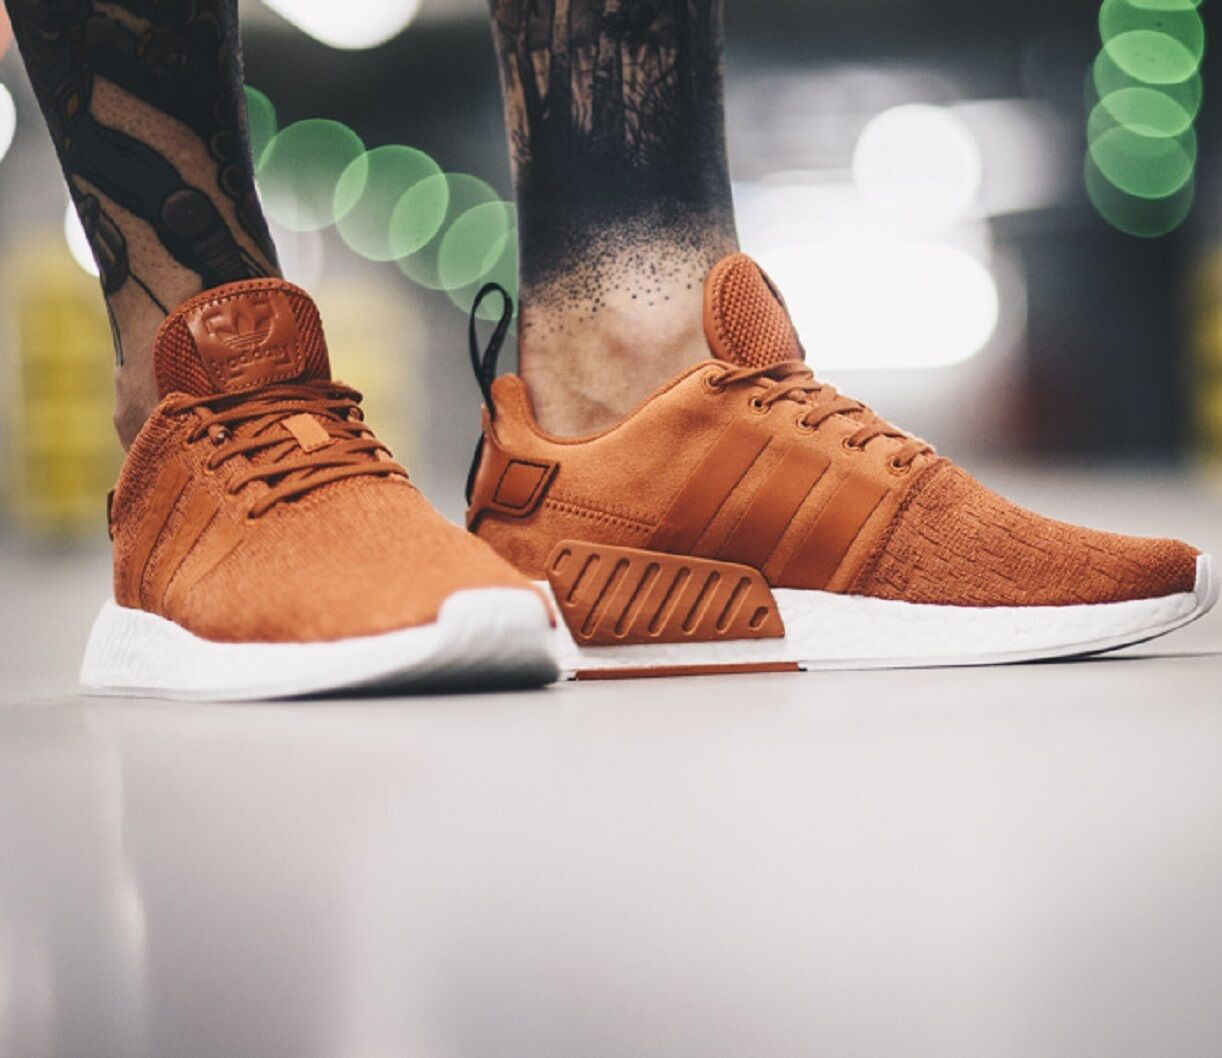 ADIDAS ORIGINALS NMD R2 Future Harvest MEN'S LIFESTYLE COMFY PREMIUM SNEAKER